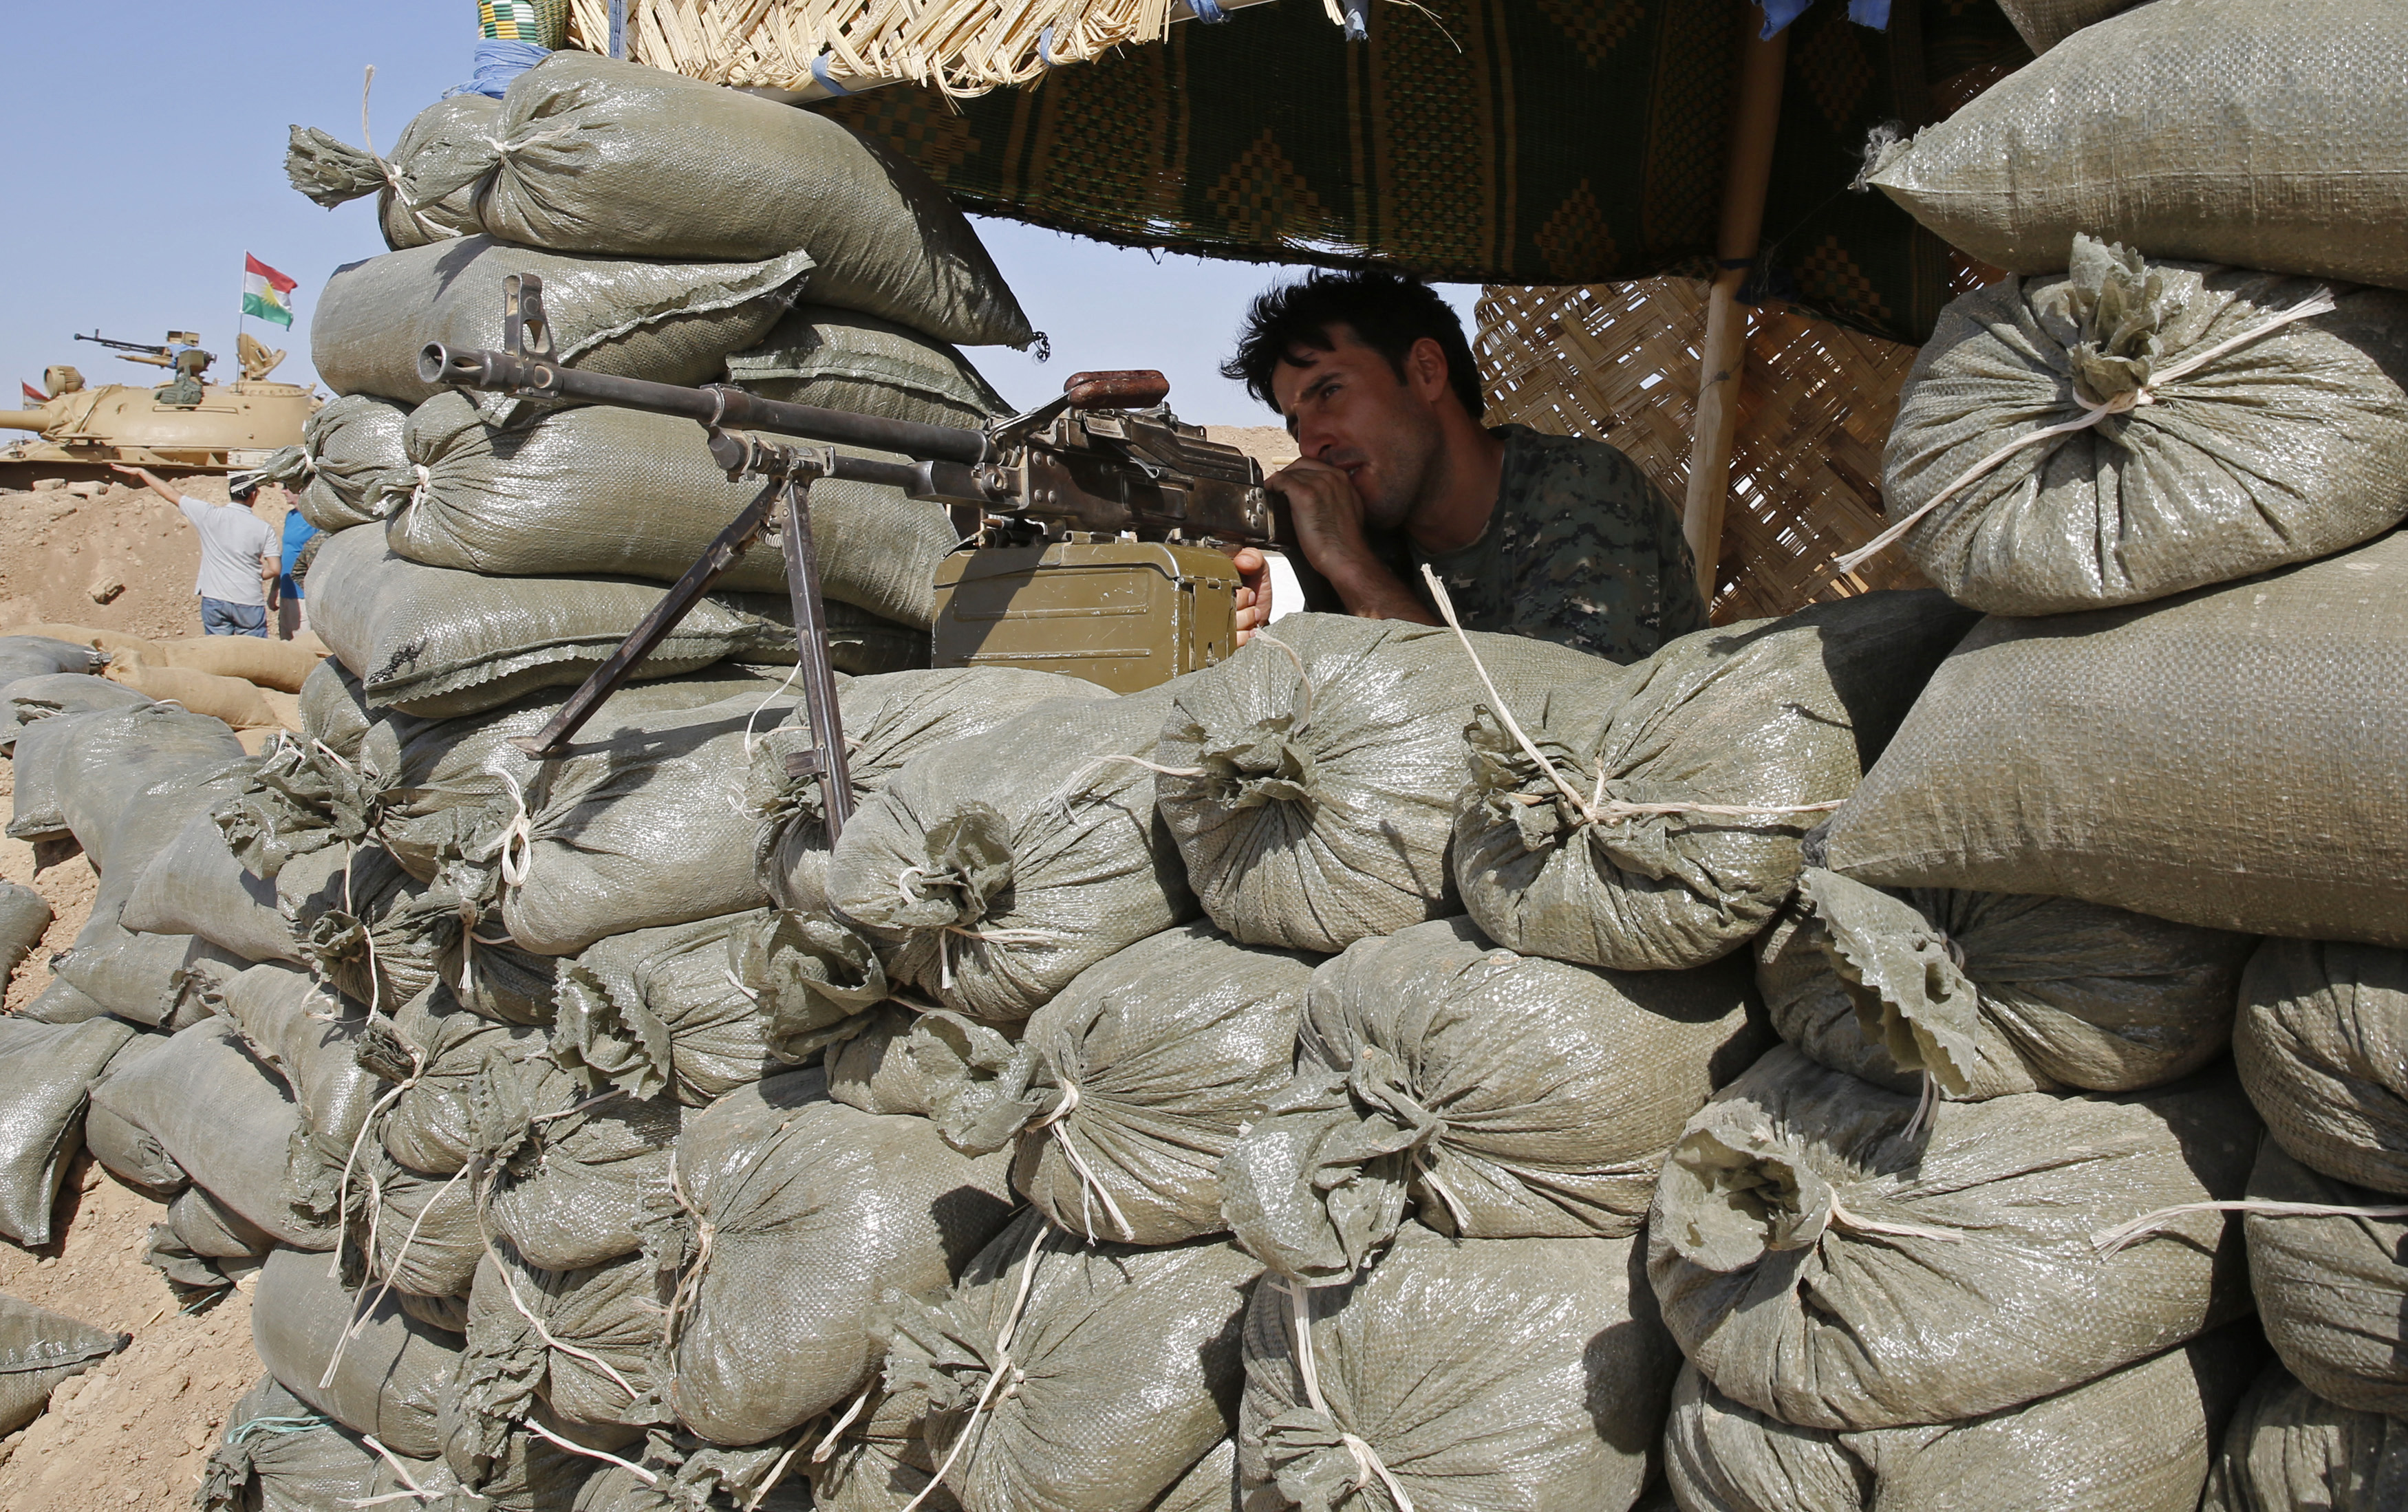 A Kurdish fighter primed for action against ISIS in the northern Iraq town of Khazir on Sunday.